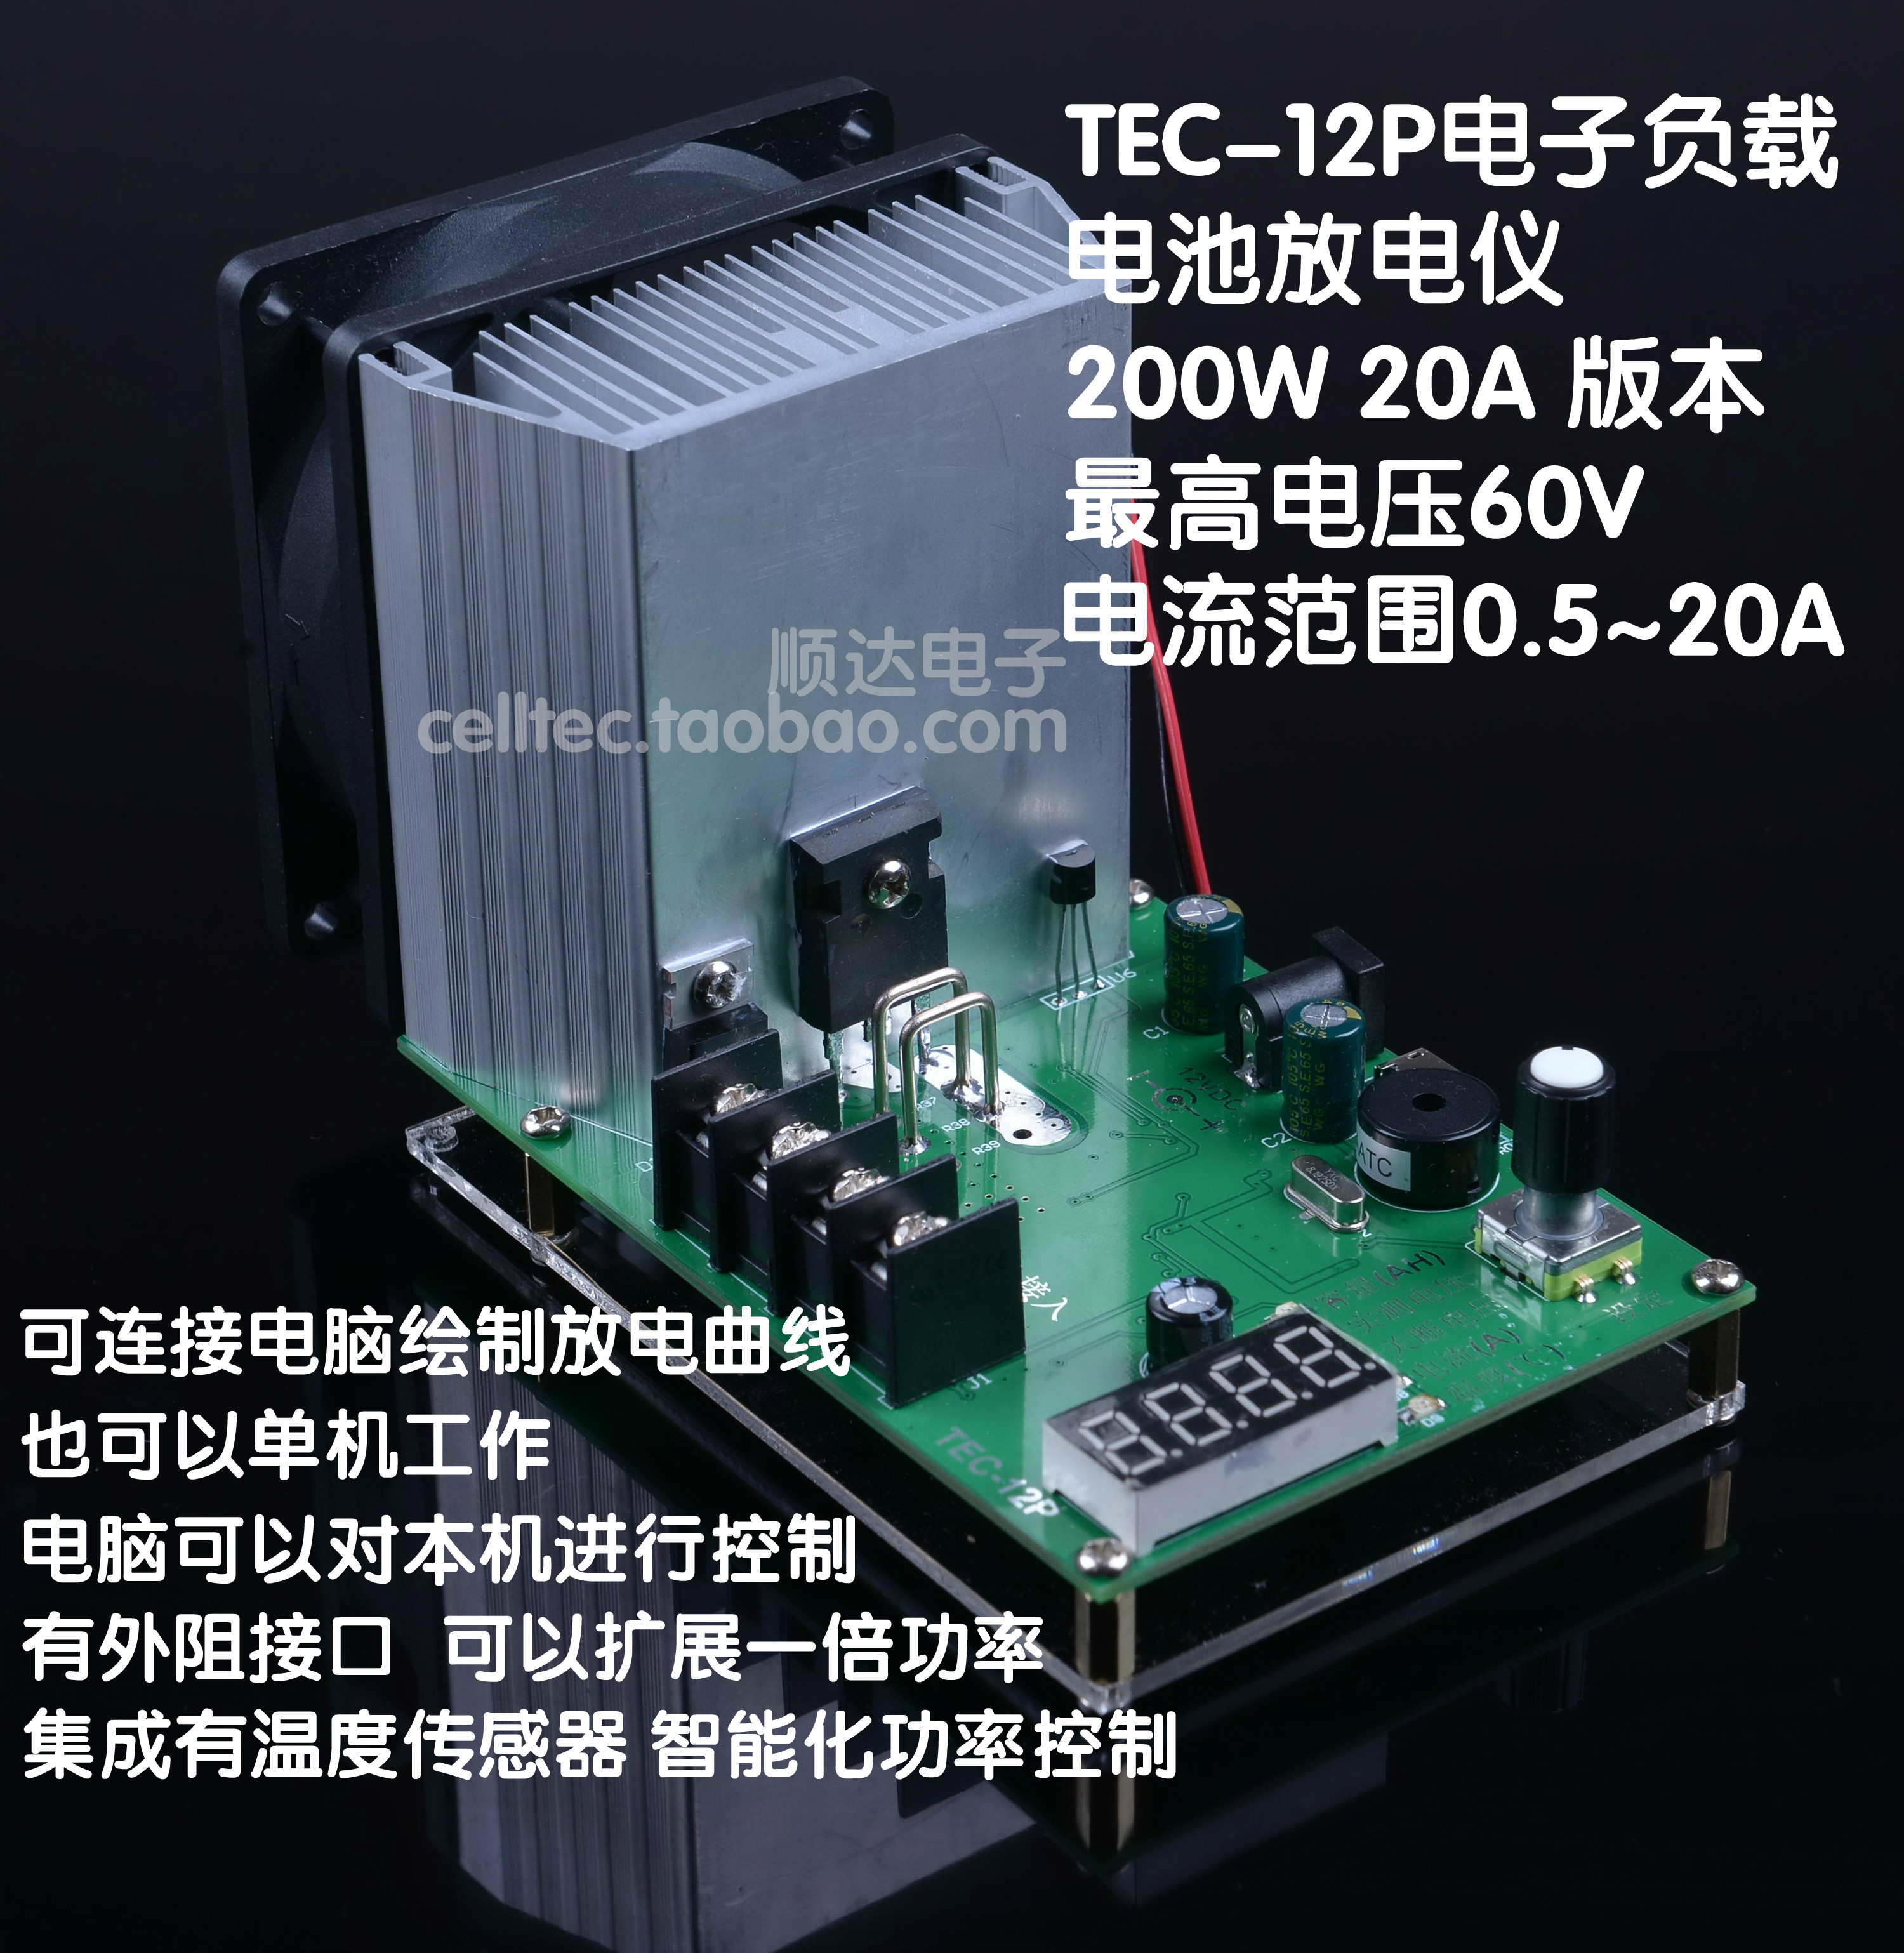 Battery capacity tester electronic load battery capacity detector 200W can connect to computer TEC-12P battery capacity tester battery capacity tester electronic load can be connected to the computer tec 12p